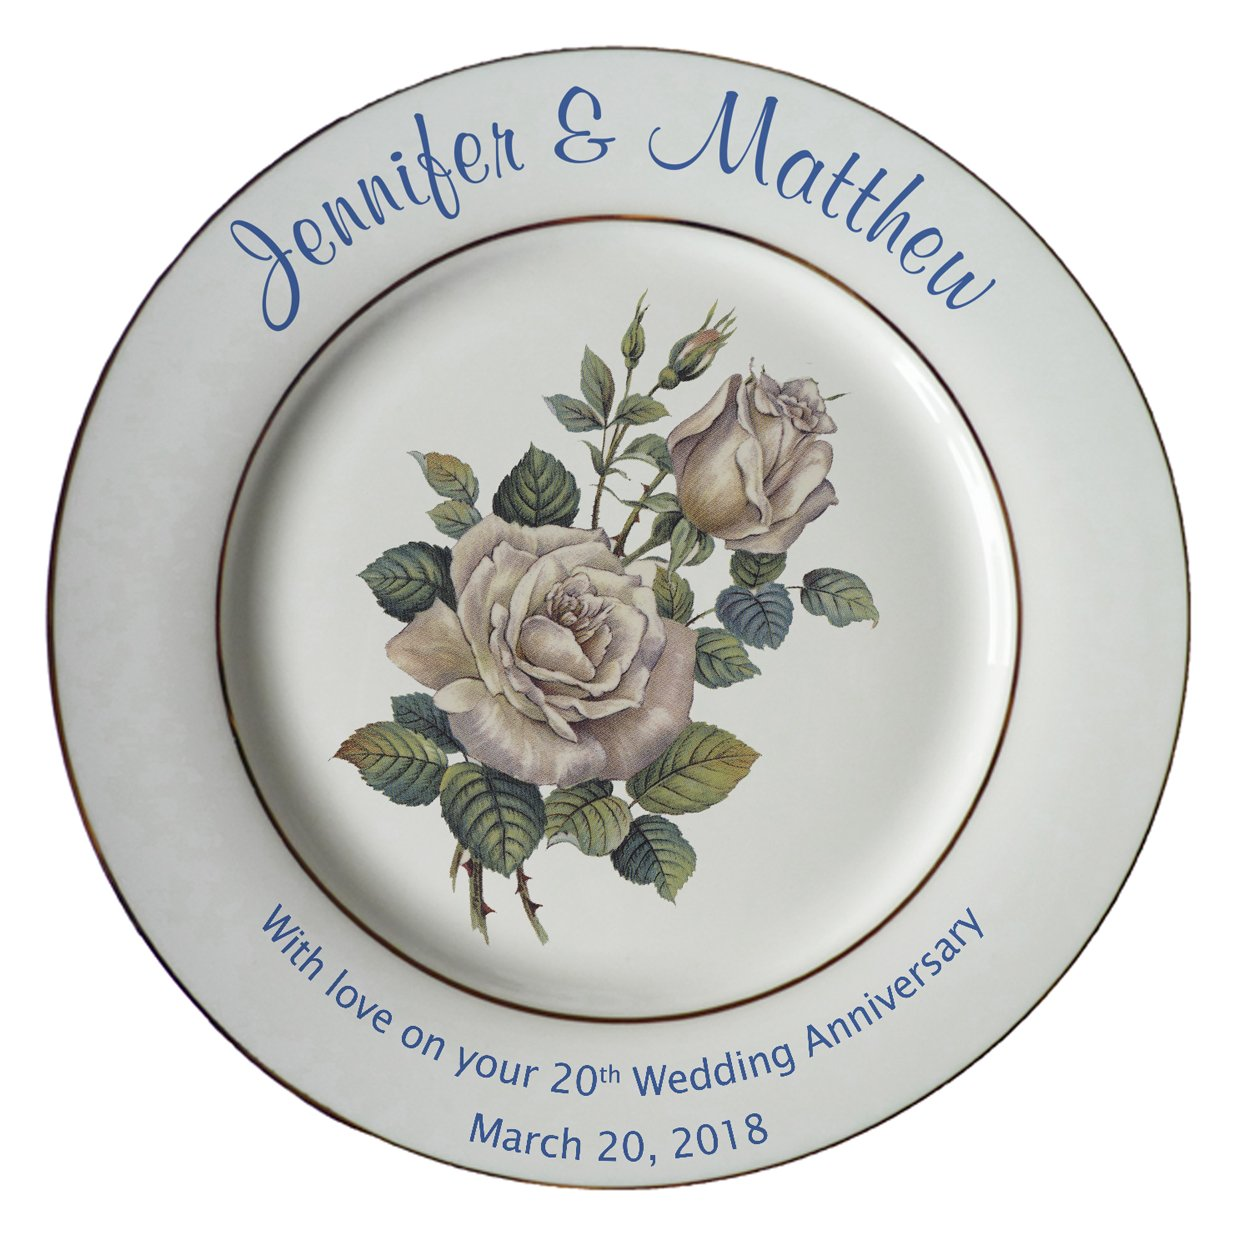 Heritage Pottery Personalized Bone China Commemorative Plate for A 20th Wedding Anniversary - White Rose Design with 2 Silver Bands